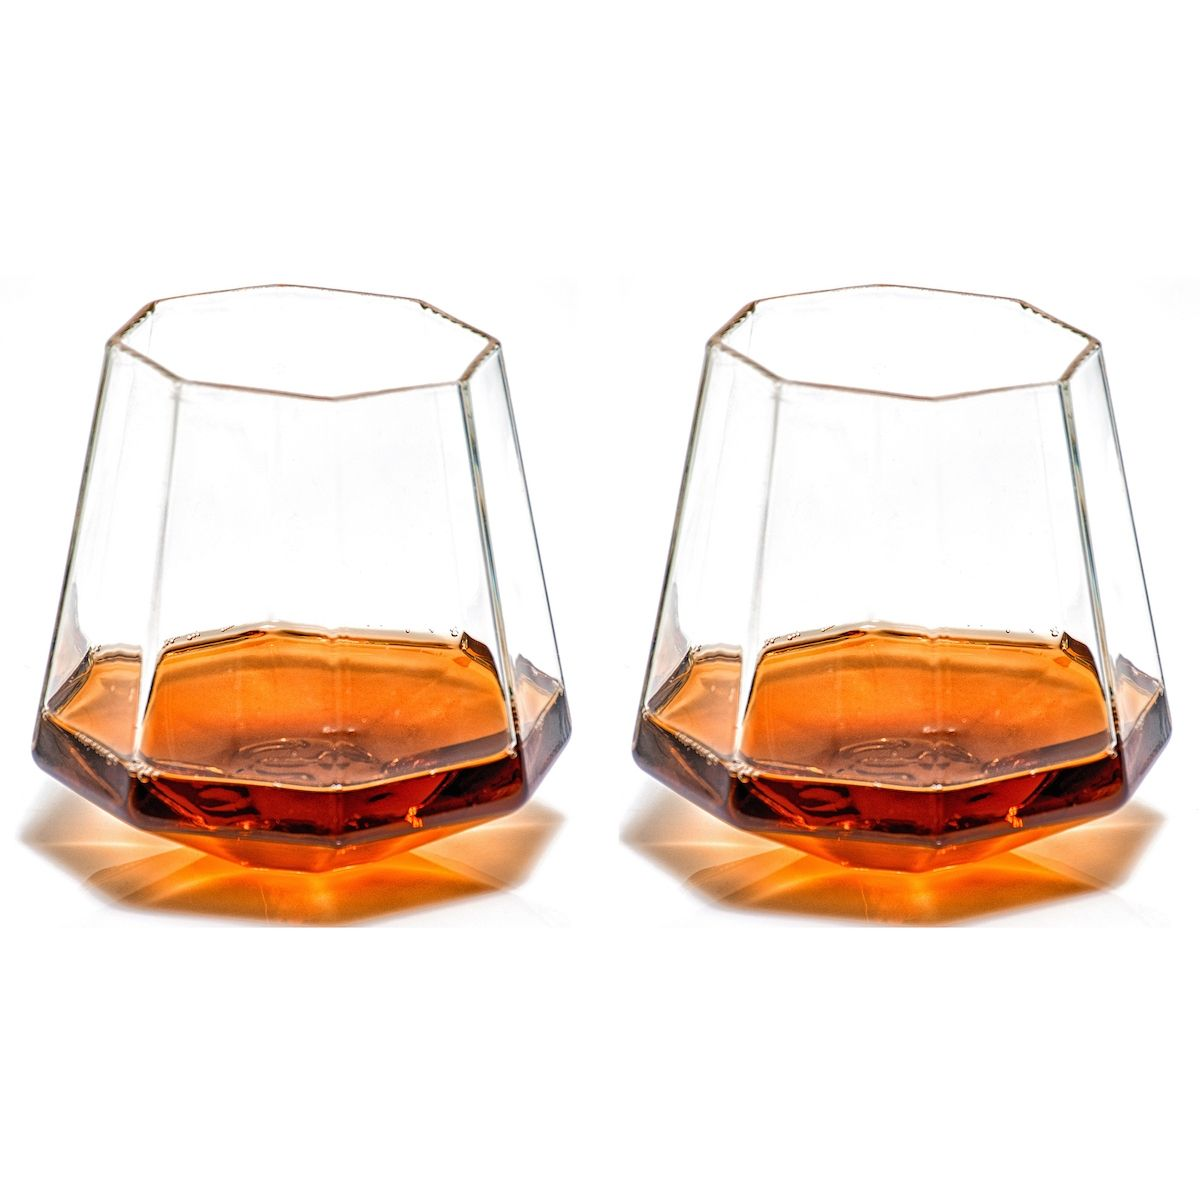 Prestige Decanter diamond-Shaped bourbon glasses